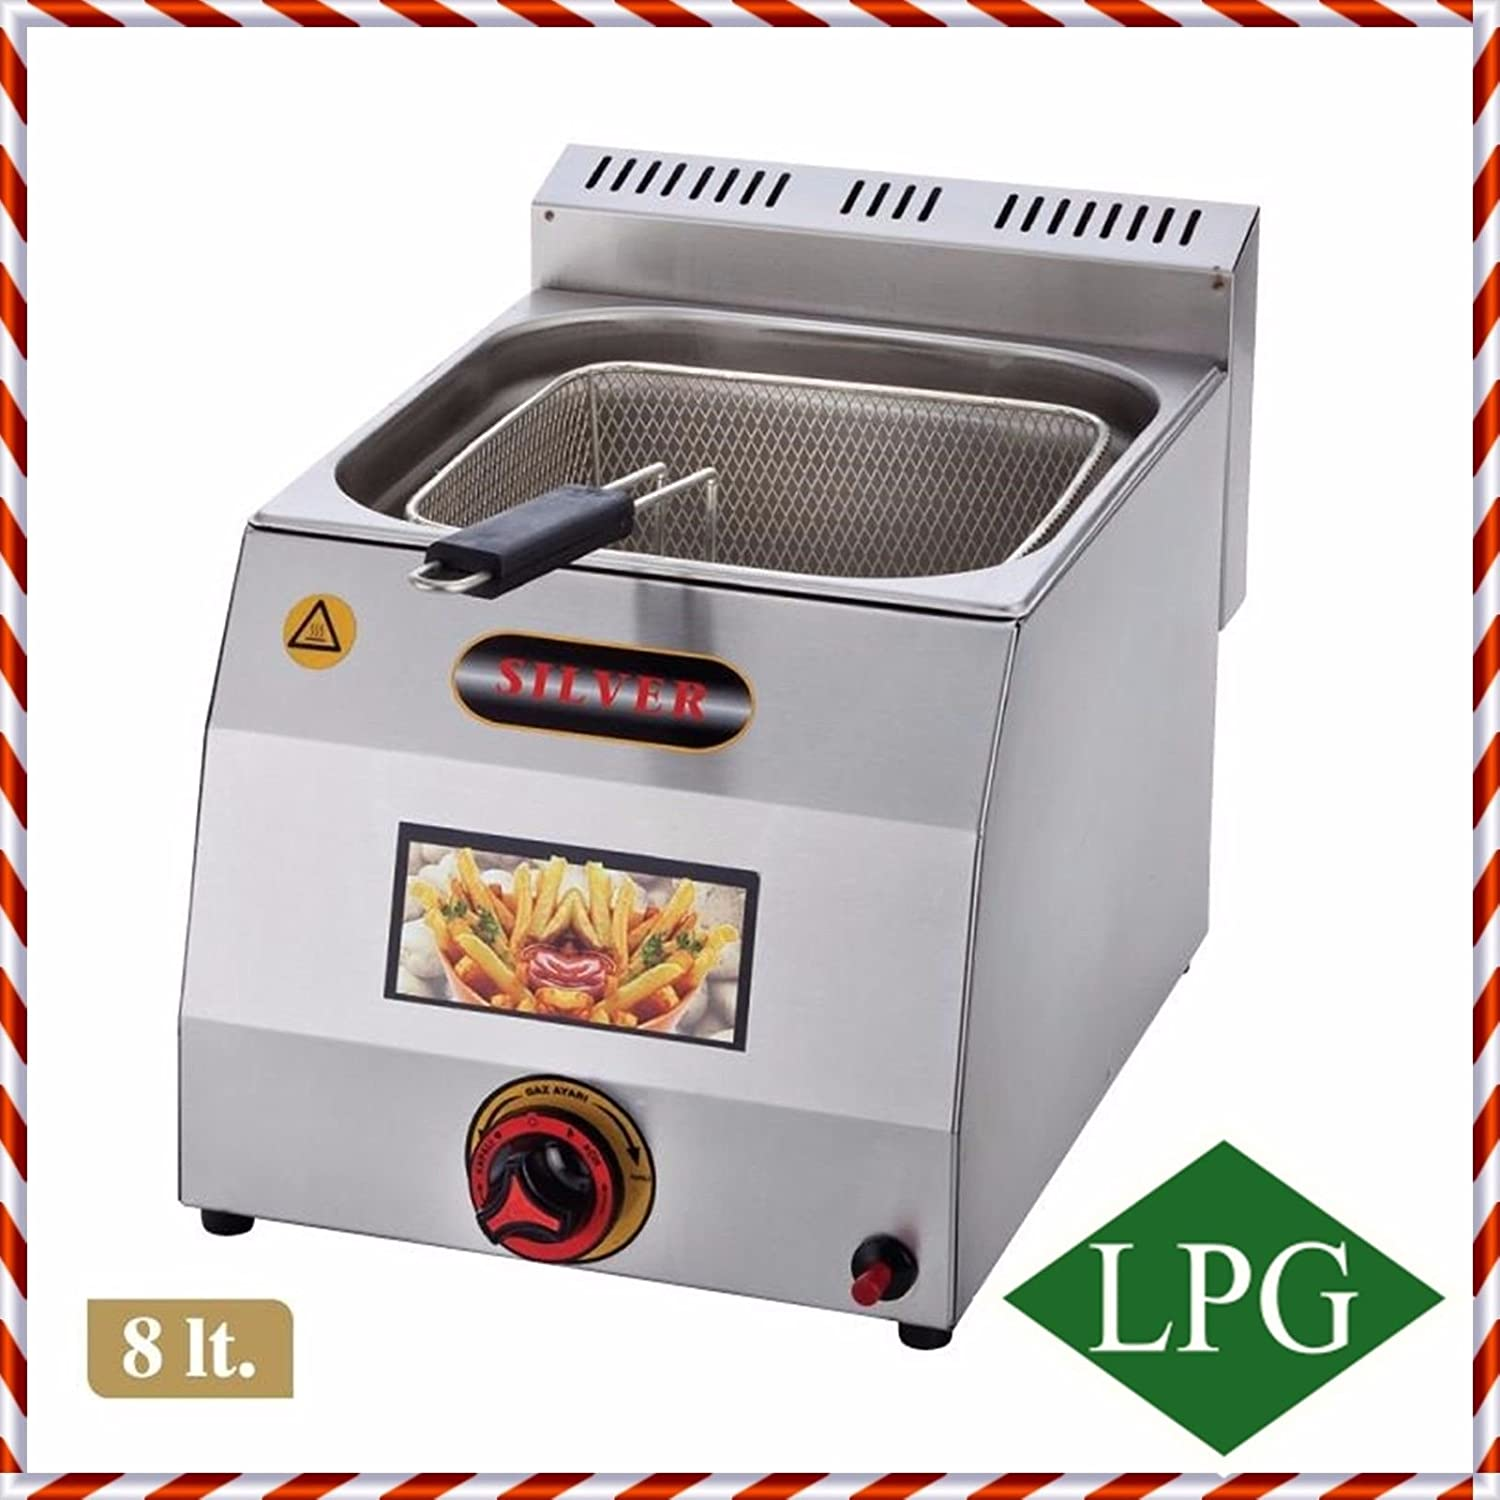 PROPANE GAS Commercial Kitchen Equipment 8 LT. CAPACITY with Basket and Lid INCLUDED Stainless Steel Commercial industrial Catering Restaurant Countertop Deep Fryer Propan LPG